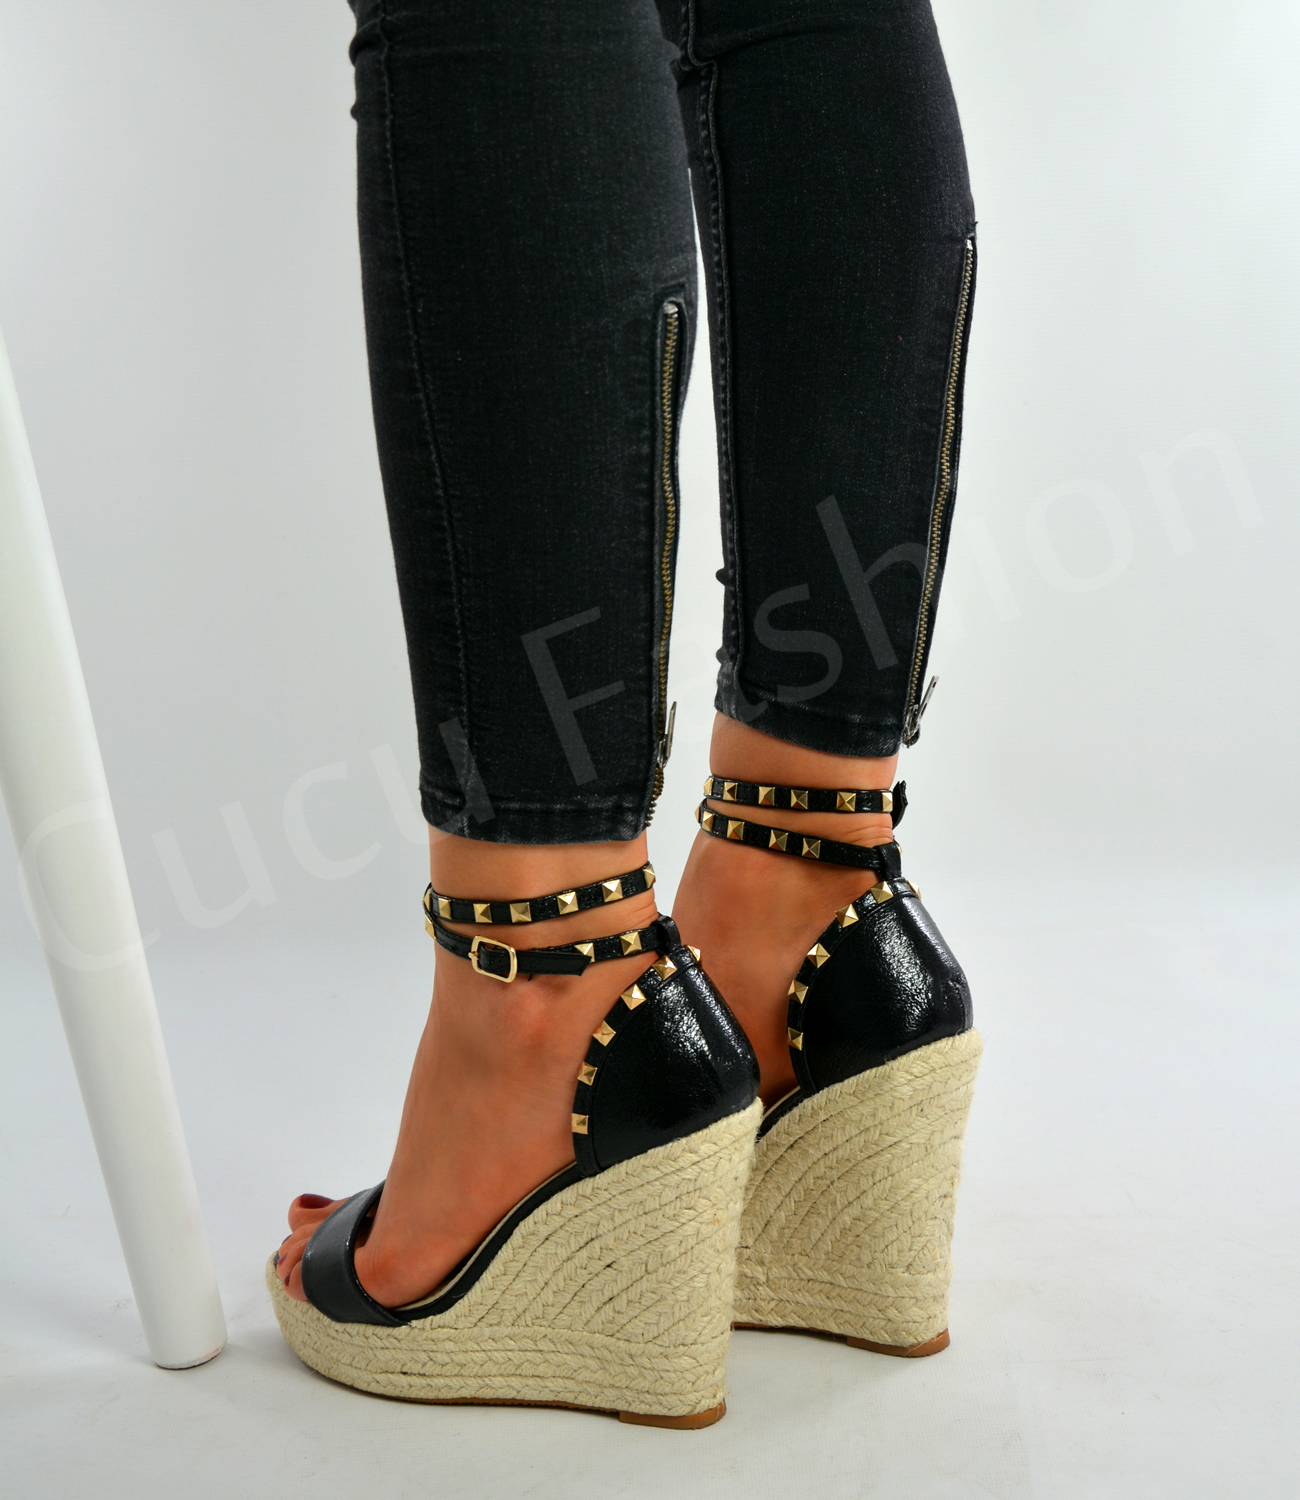 6 Tall Wedge Shoes. Clearance shoes are discounted and will not be valid for returns or exchanges.